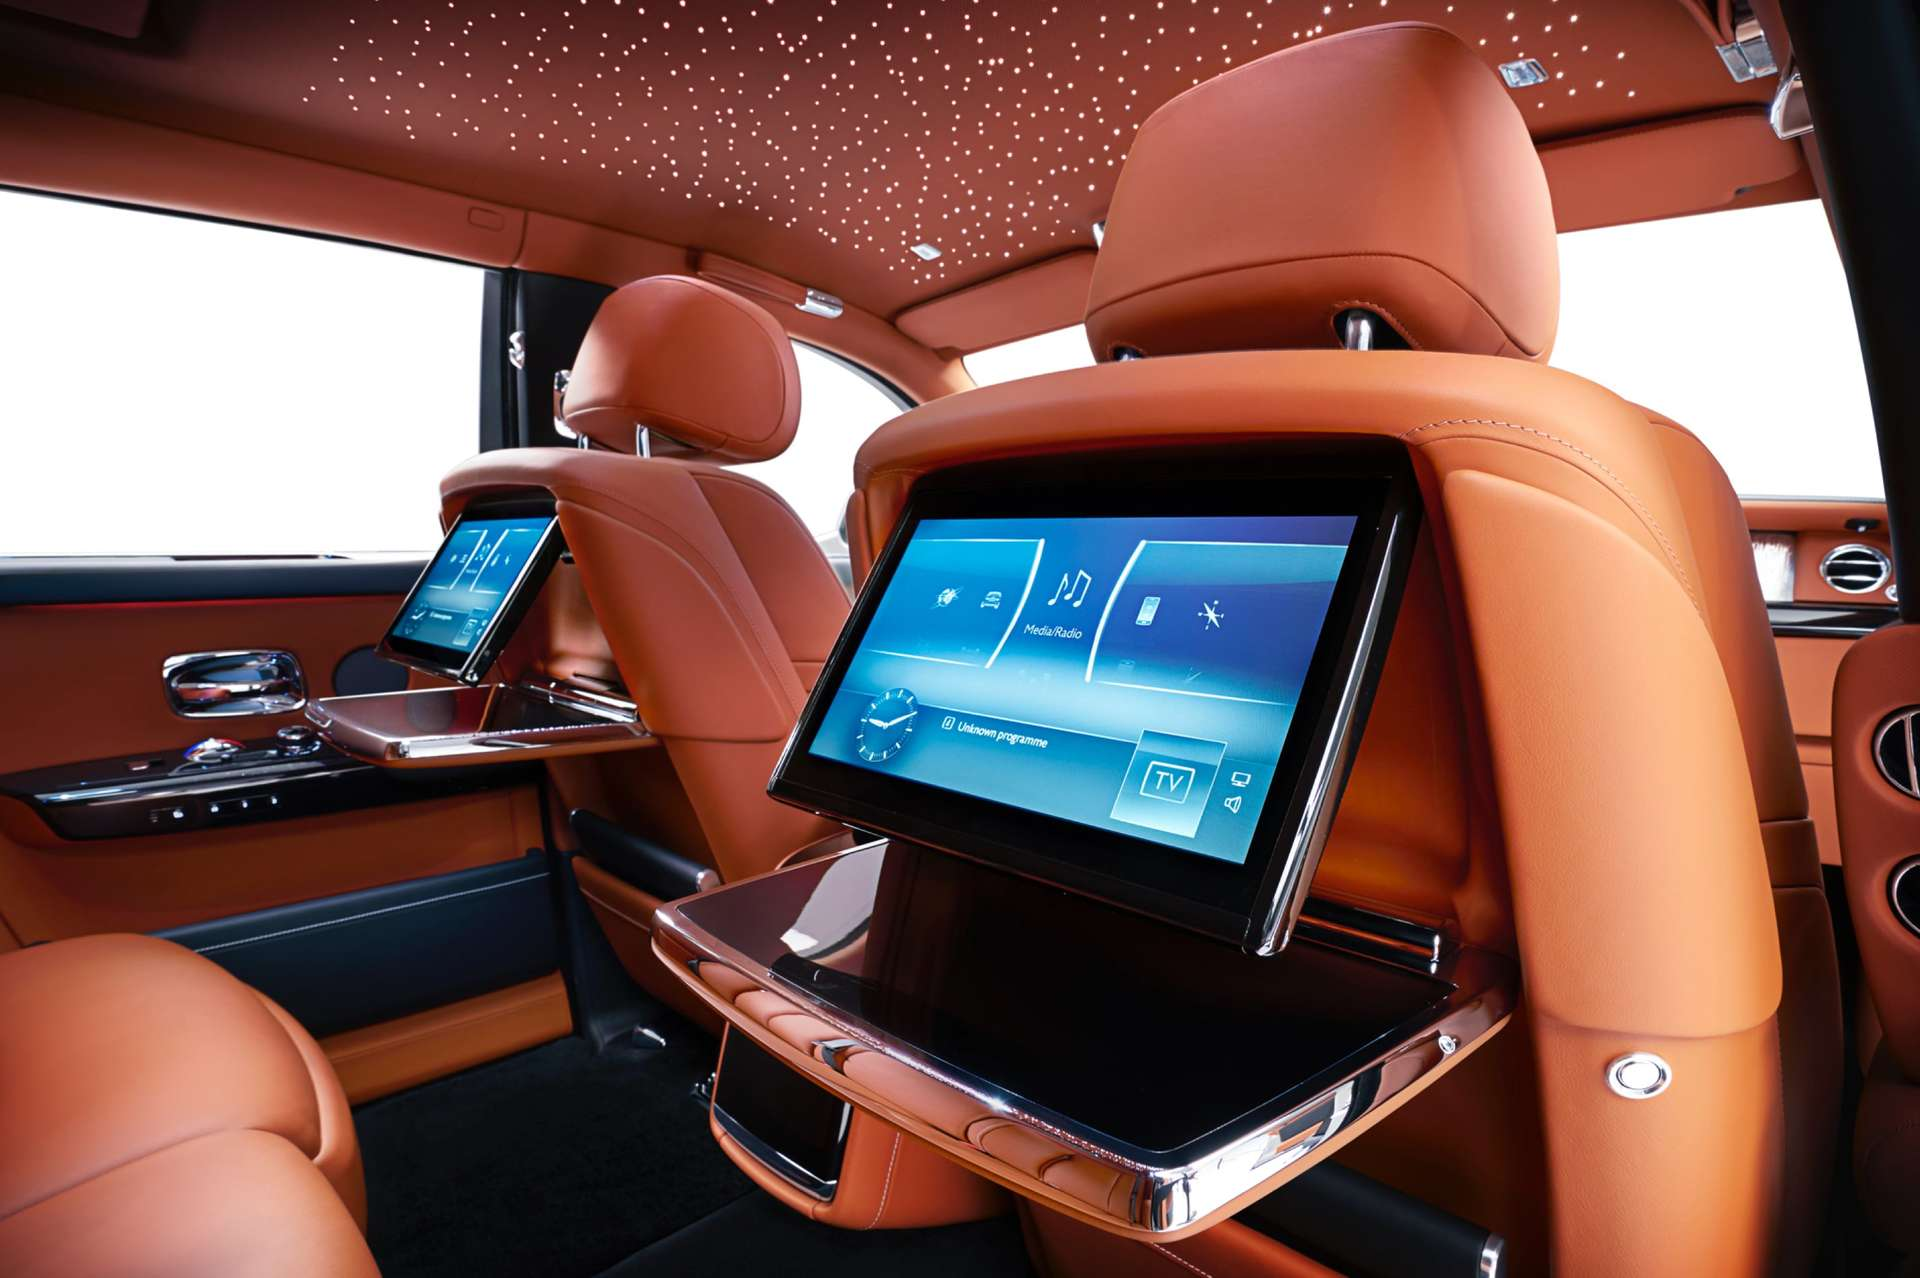 The rear TV screens in operation in the Rolls-Royce Phantom standard wheelbase.